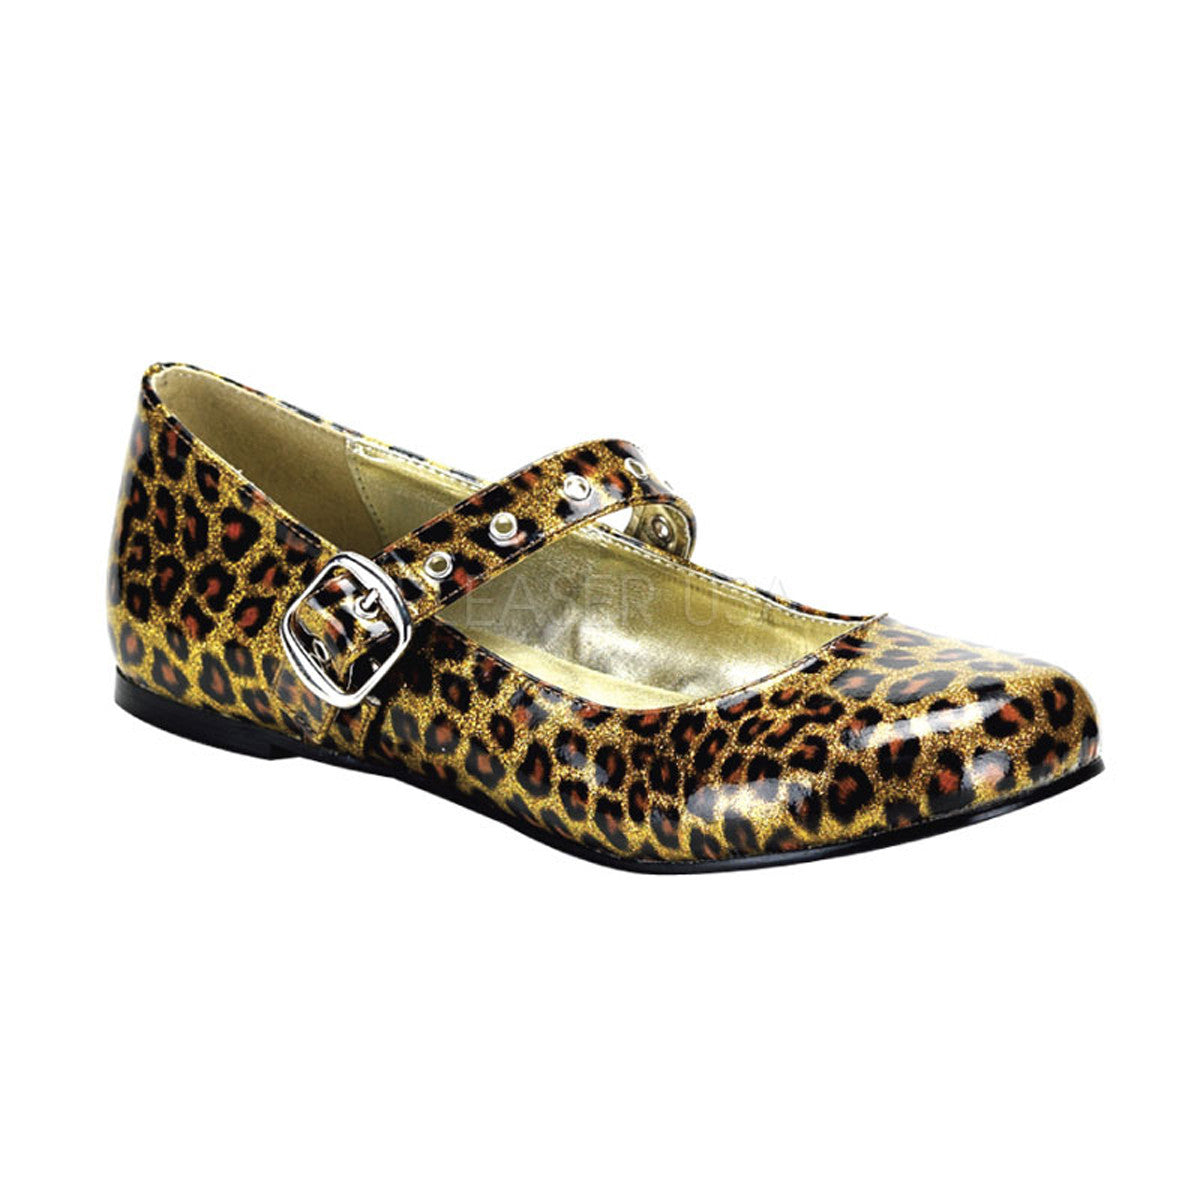 DAISY-04 Leopard Pearlized Glitter Shoes